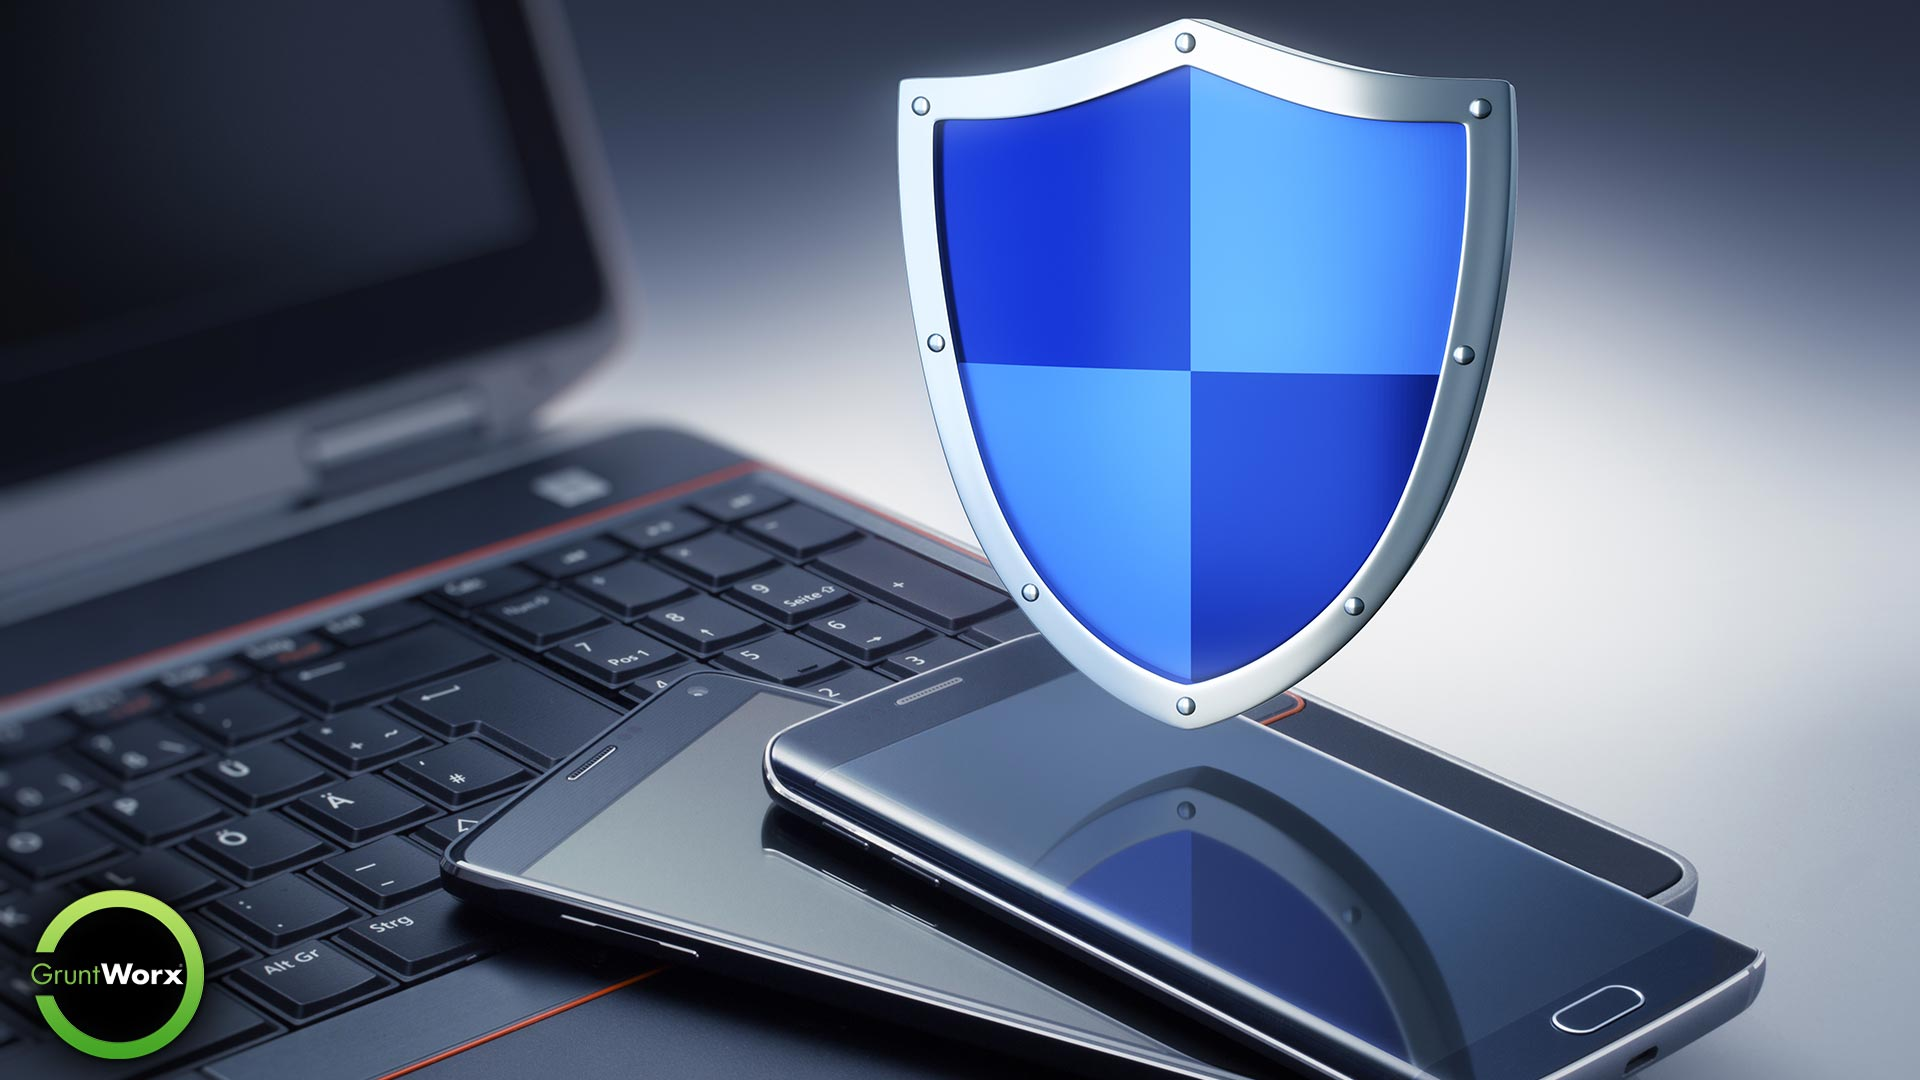 gwx-447_mobile-security-tips-blog